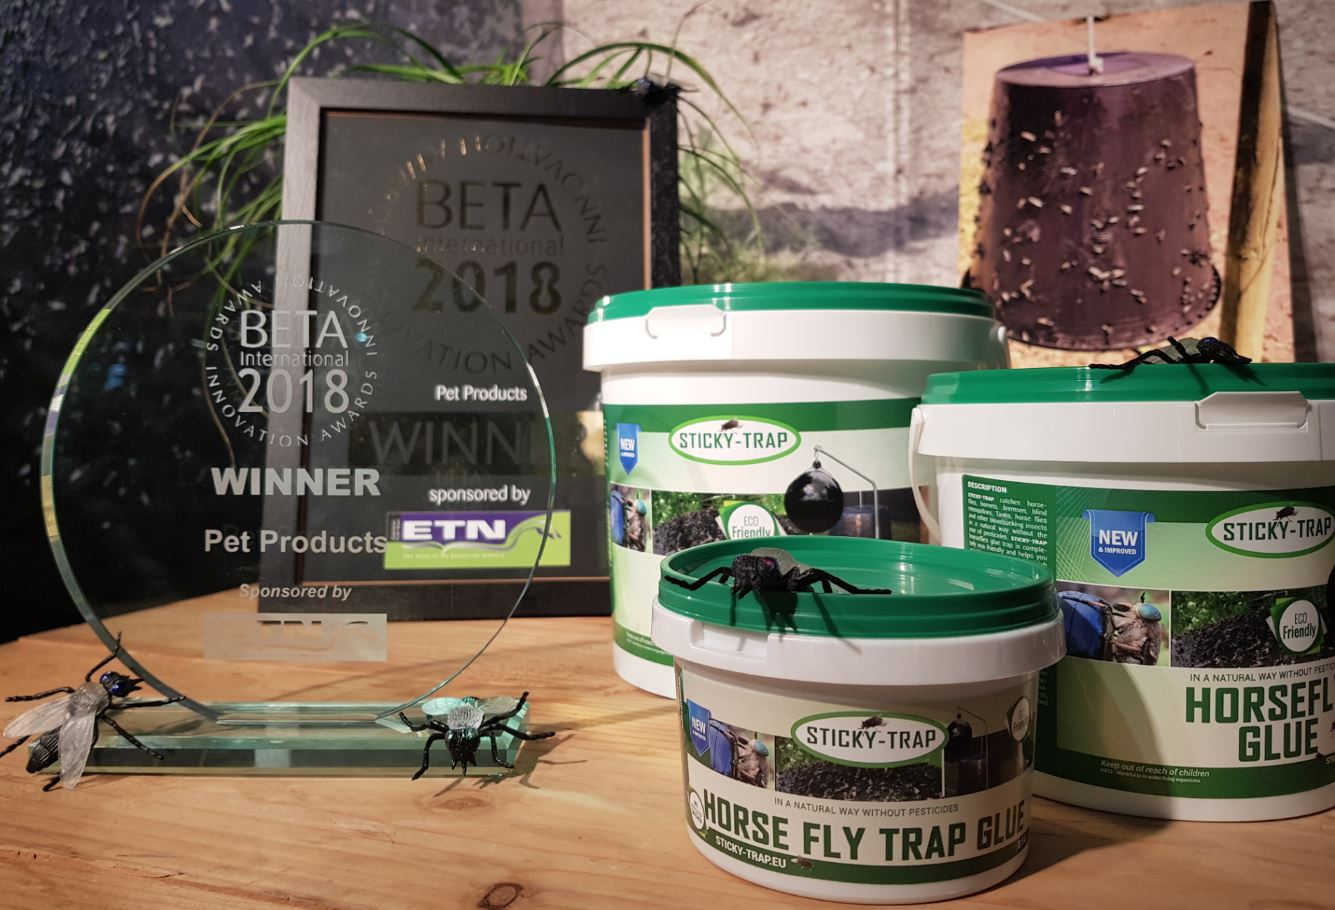 Beta International Winner Sticky Trap